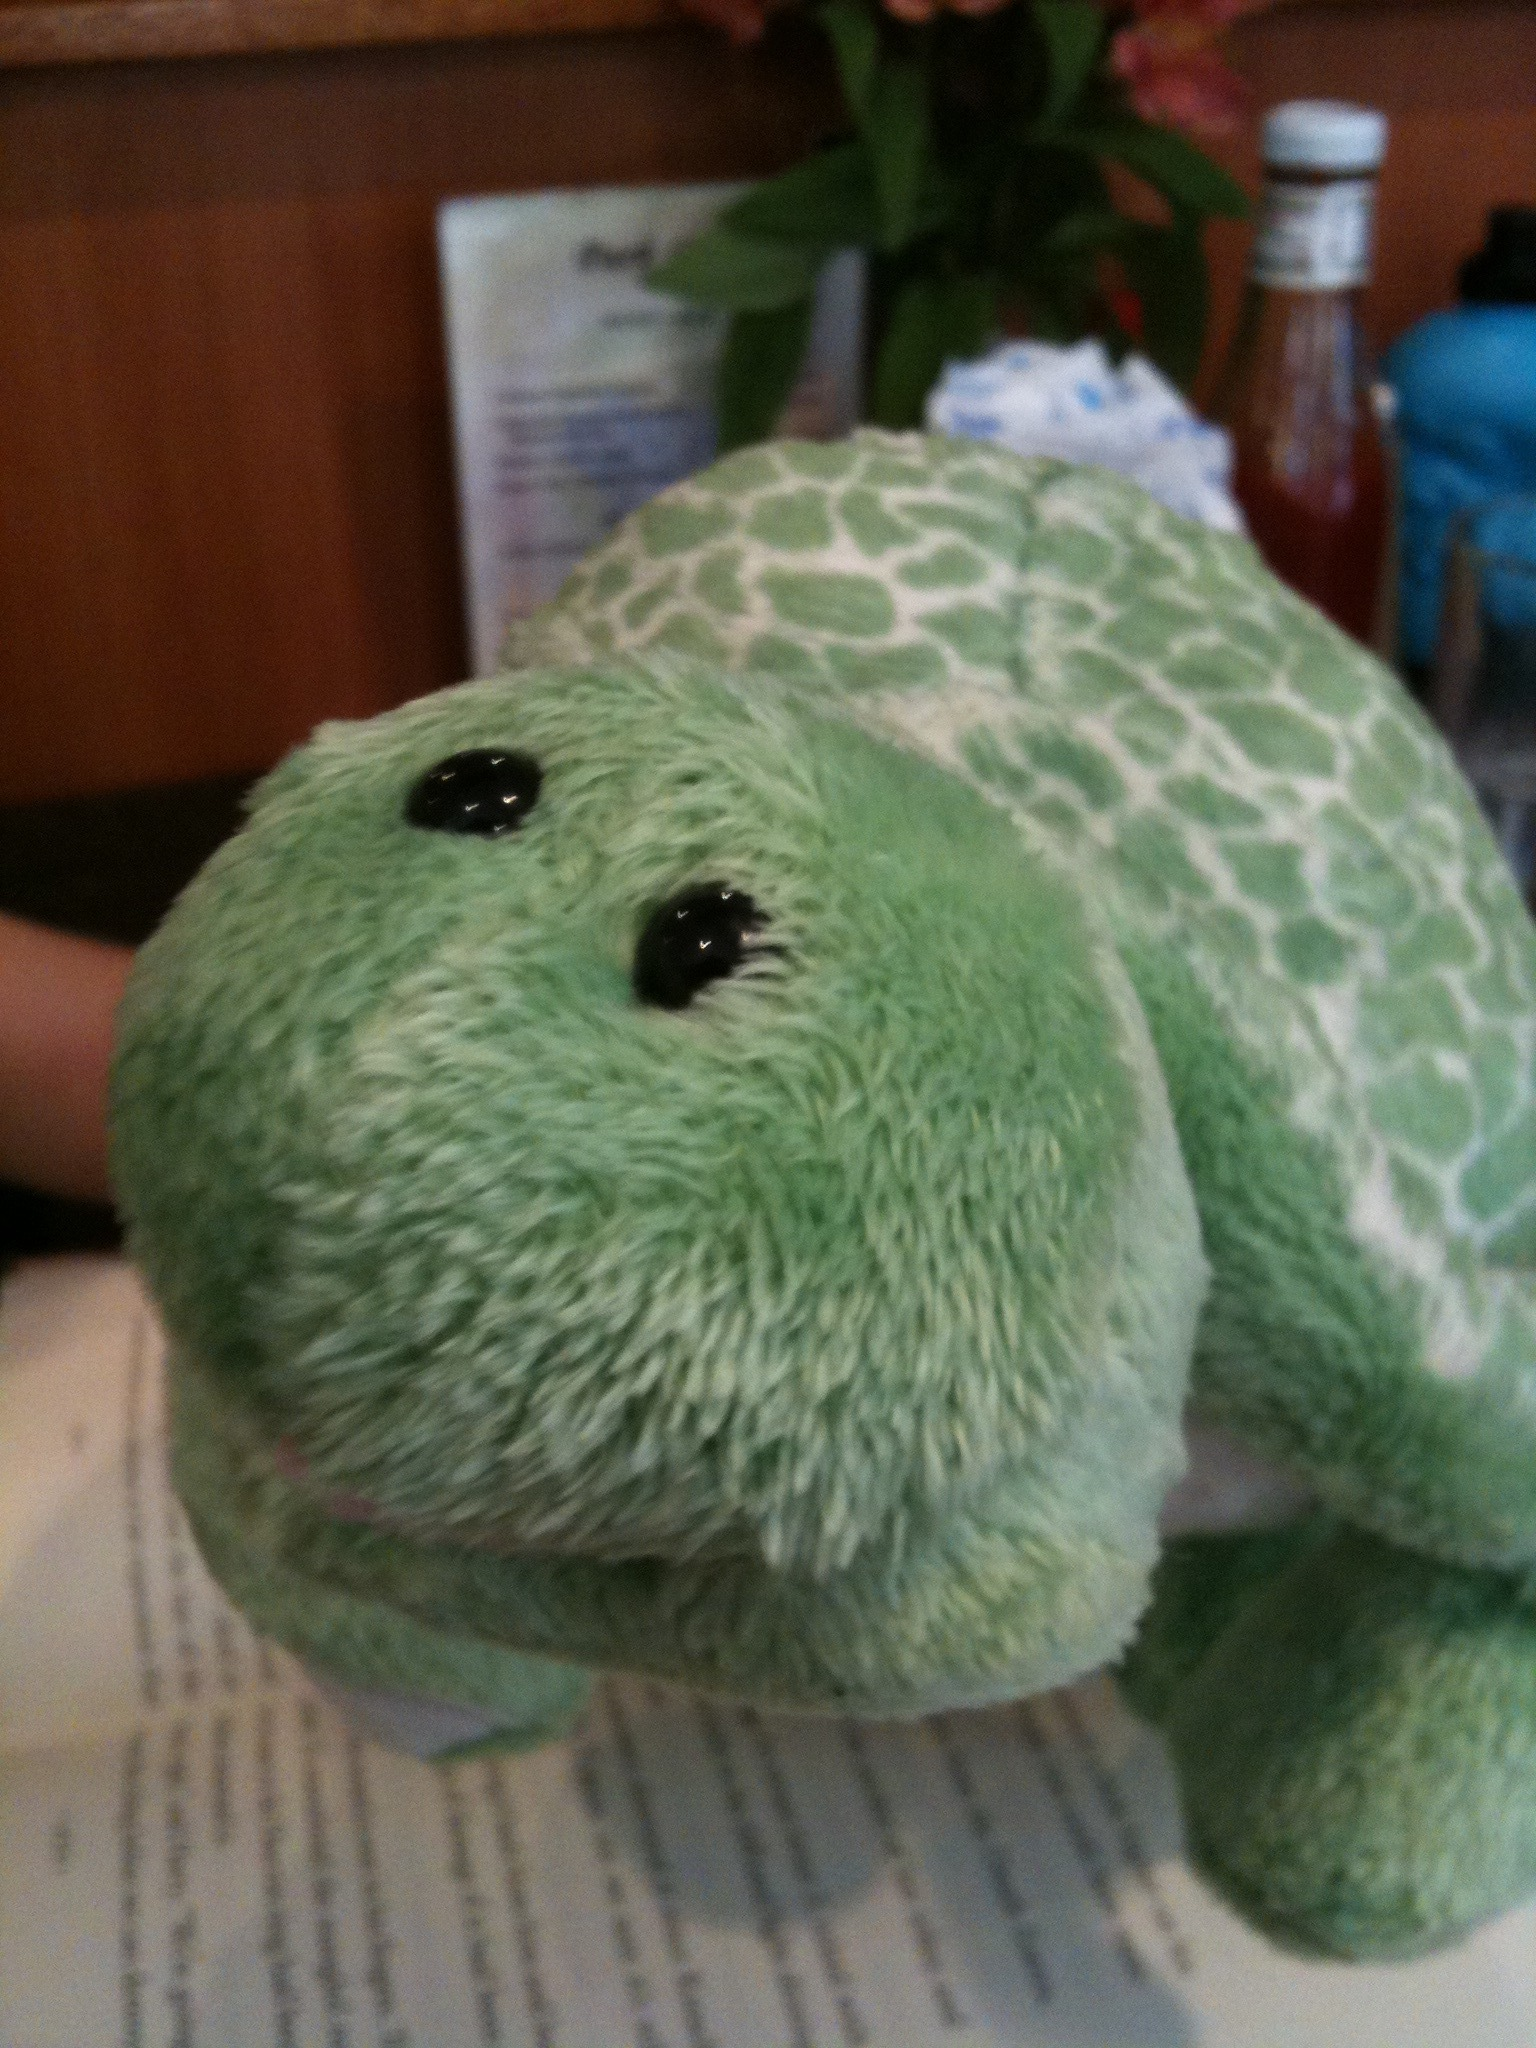 This is my daughter's Webkinz turtle Greenie, at the Park Cafe on 7th Avenue.